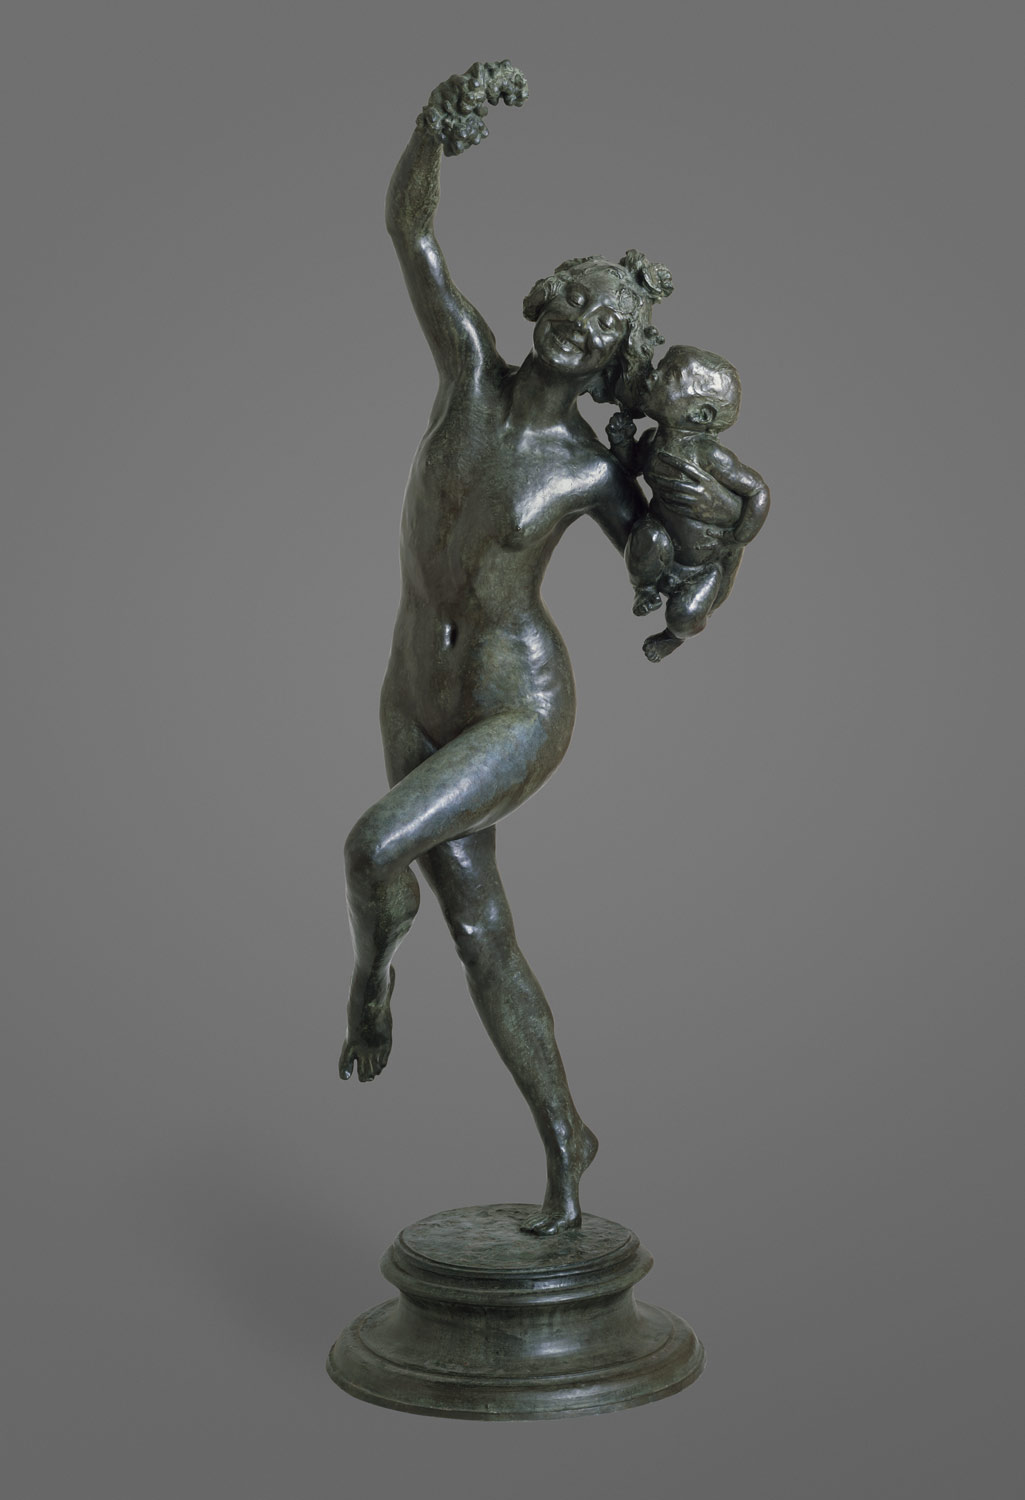 Bacchante and Infant Faun